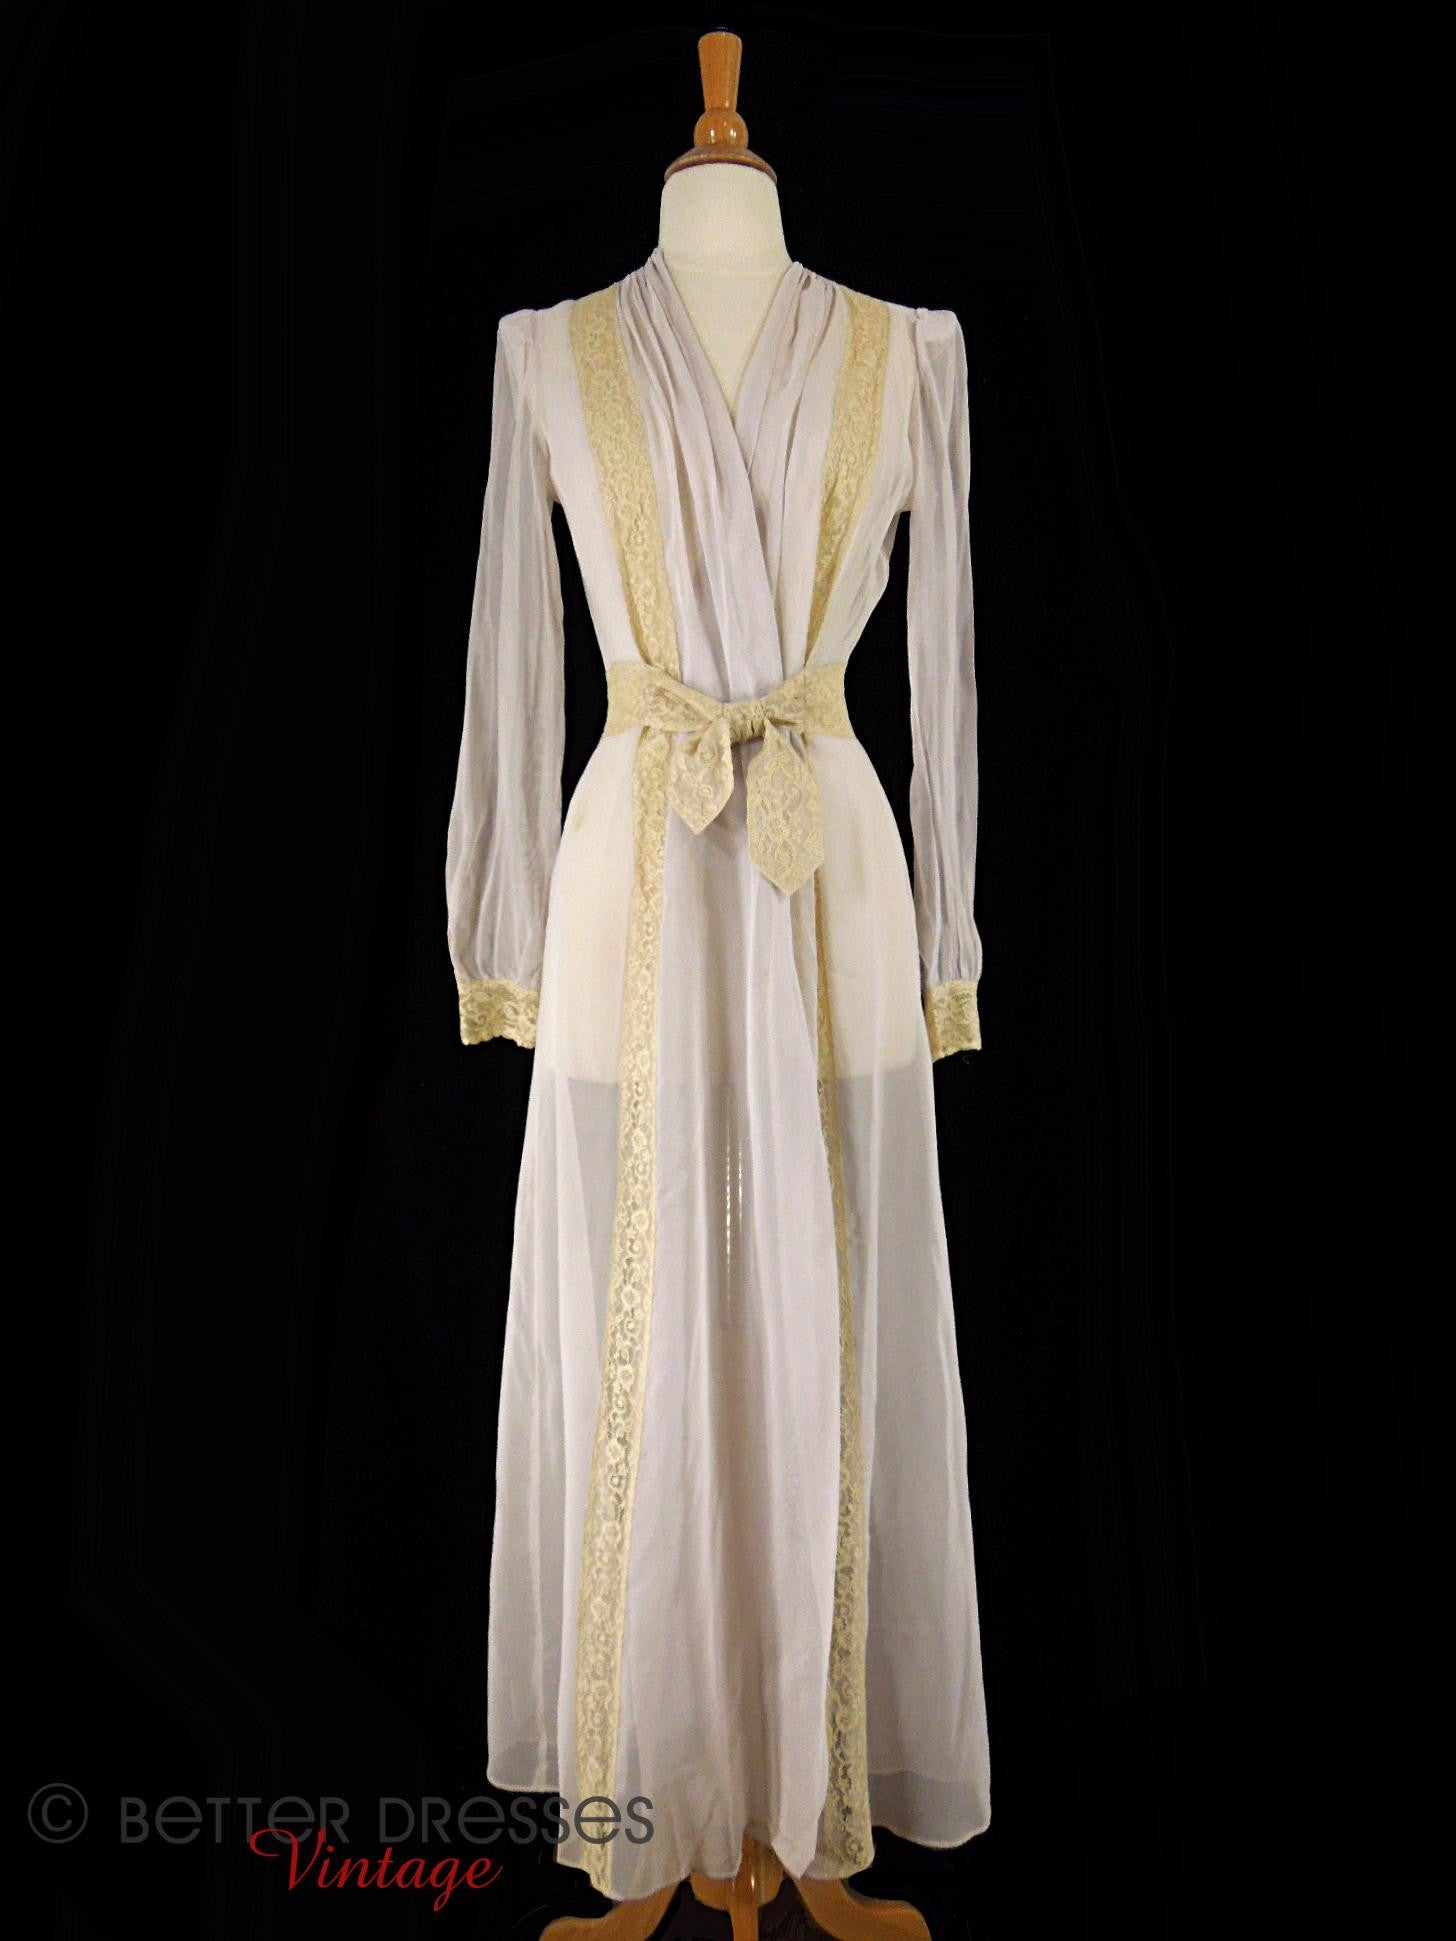 Vintage 1930s Peignoir Robe by Hobert Lavender and Lace - sm, med ...